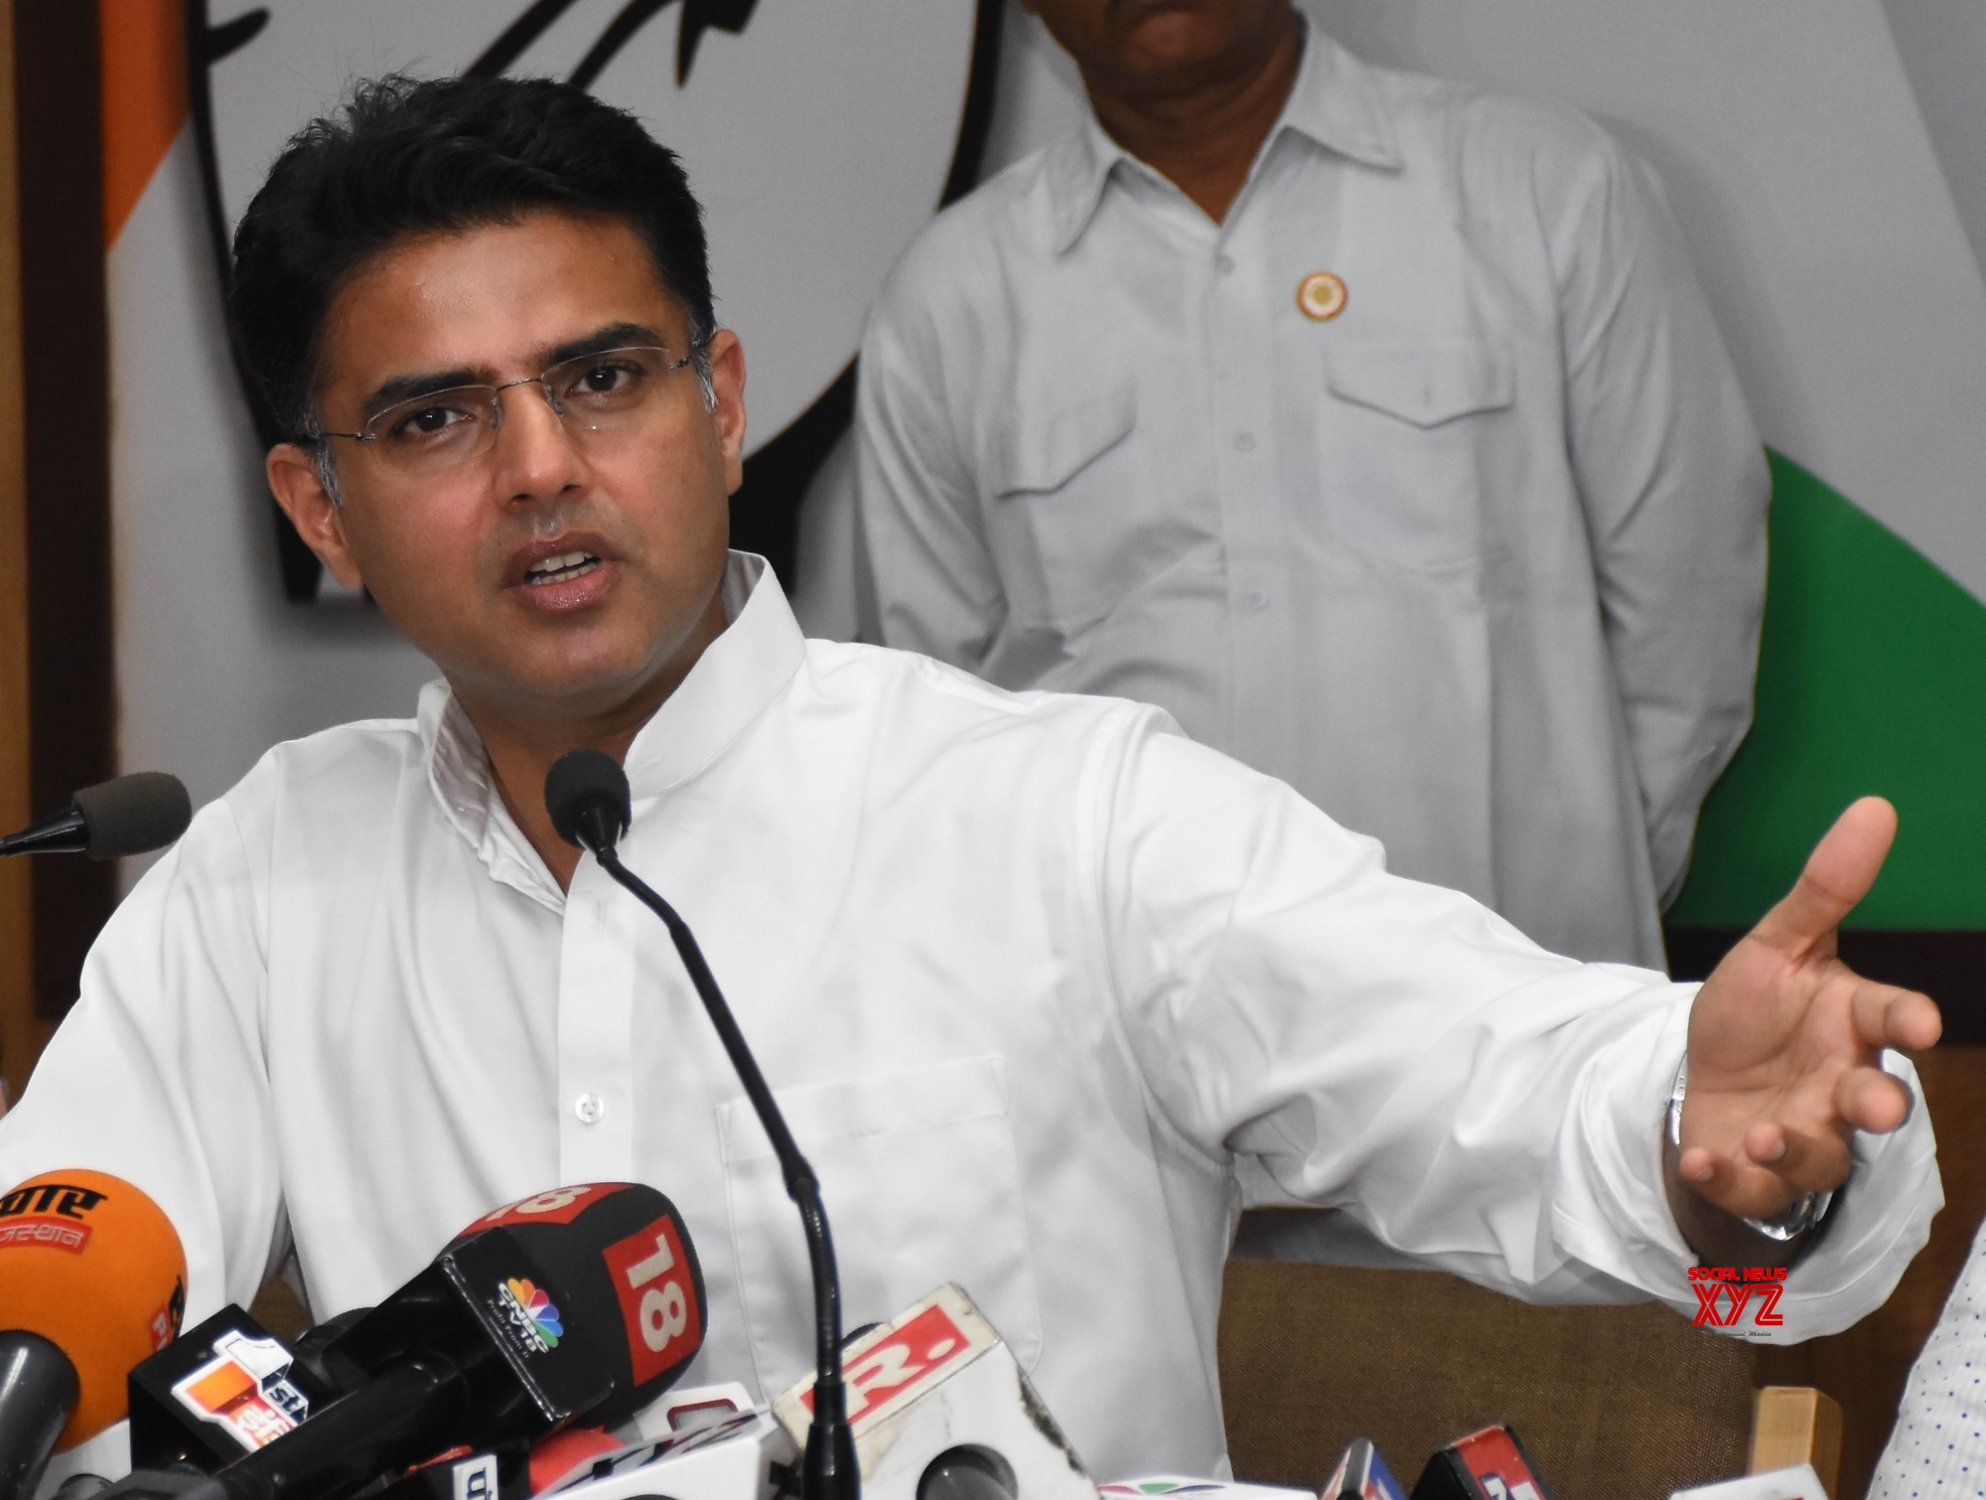 Jaipur: Sachin Pilot's press conference #Gallery